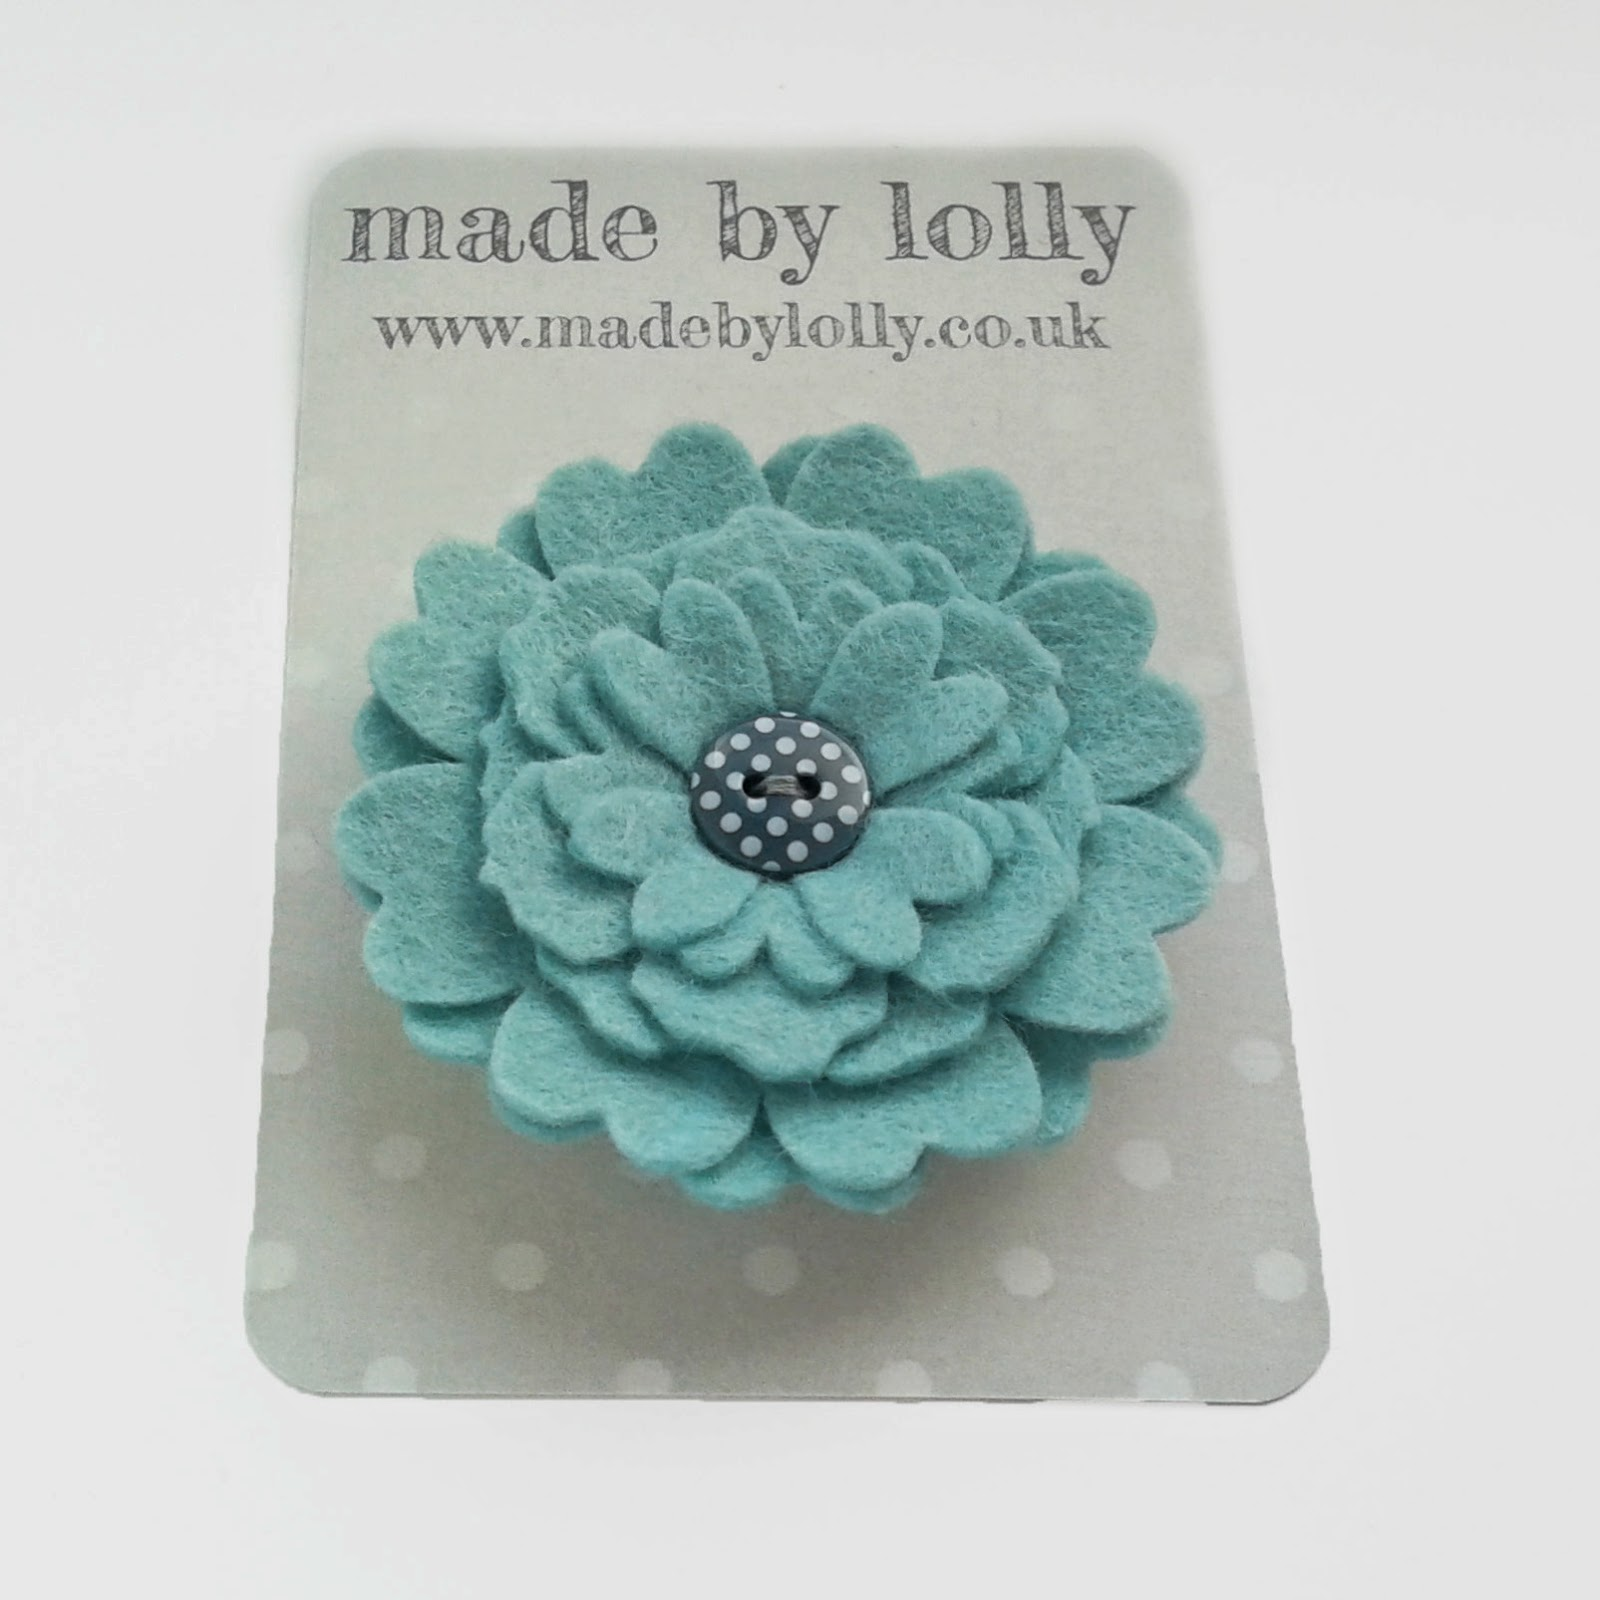 http://madebylolly.co.uk/ourshop/prod_3118782-HANA-Felt-Flower-Brooch-Aqua.html